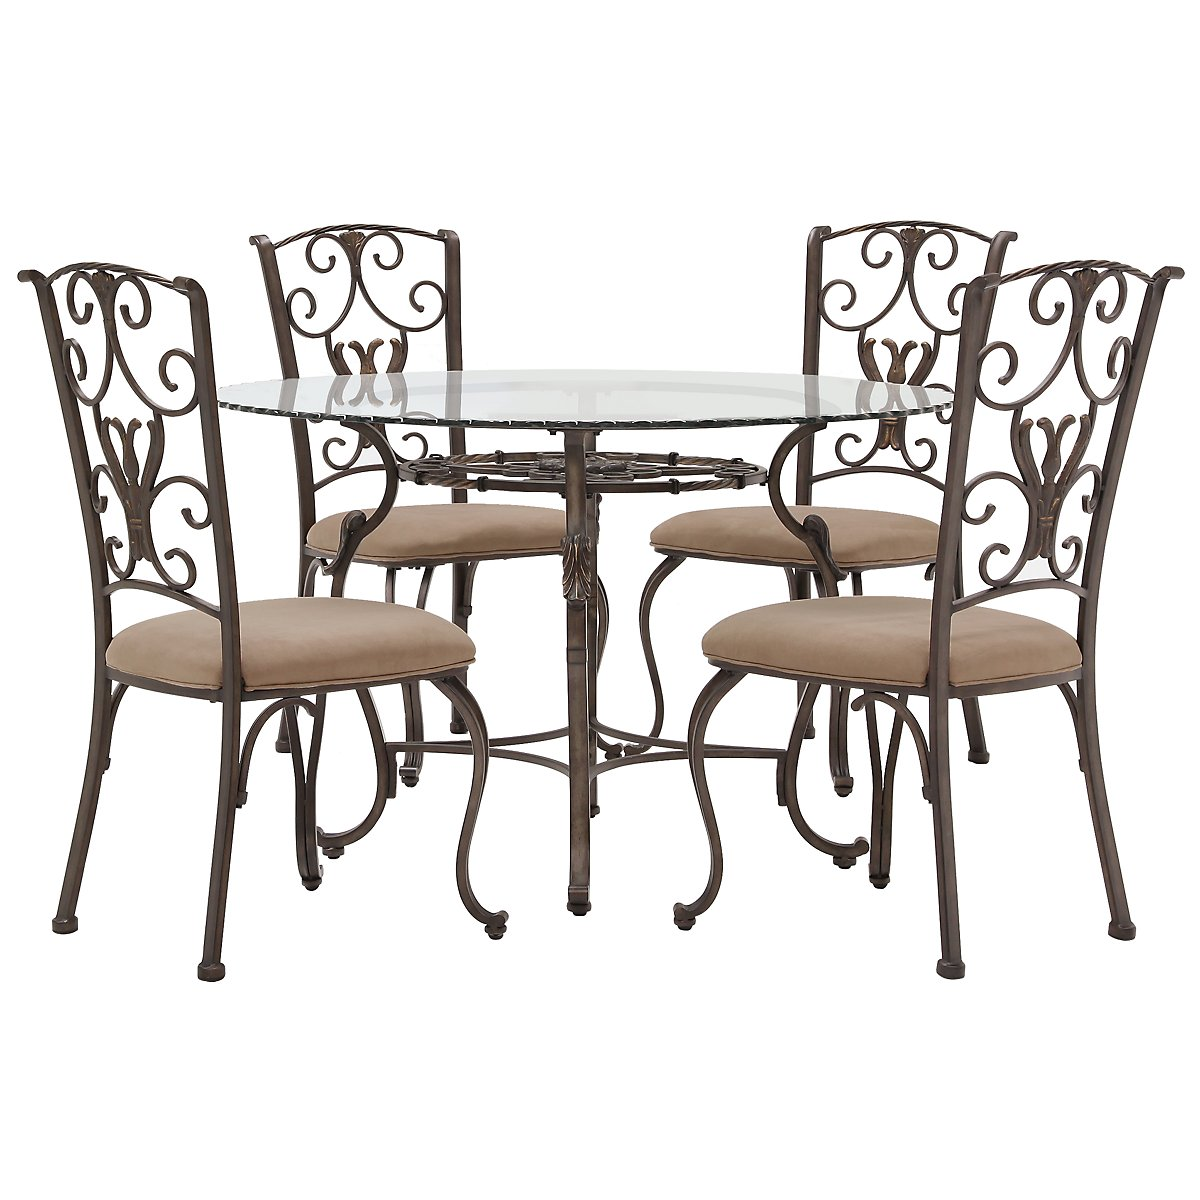 Westcot2 round glass table 4 chairs for Dining room sets 4 chairs